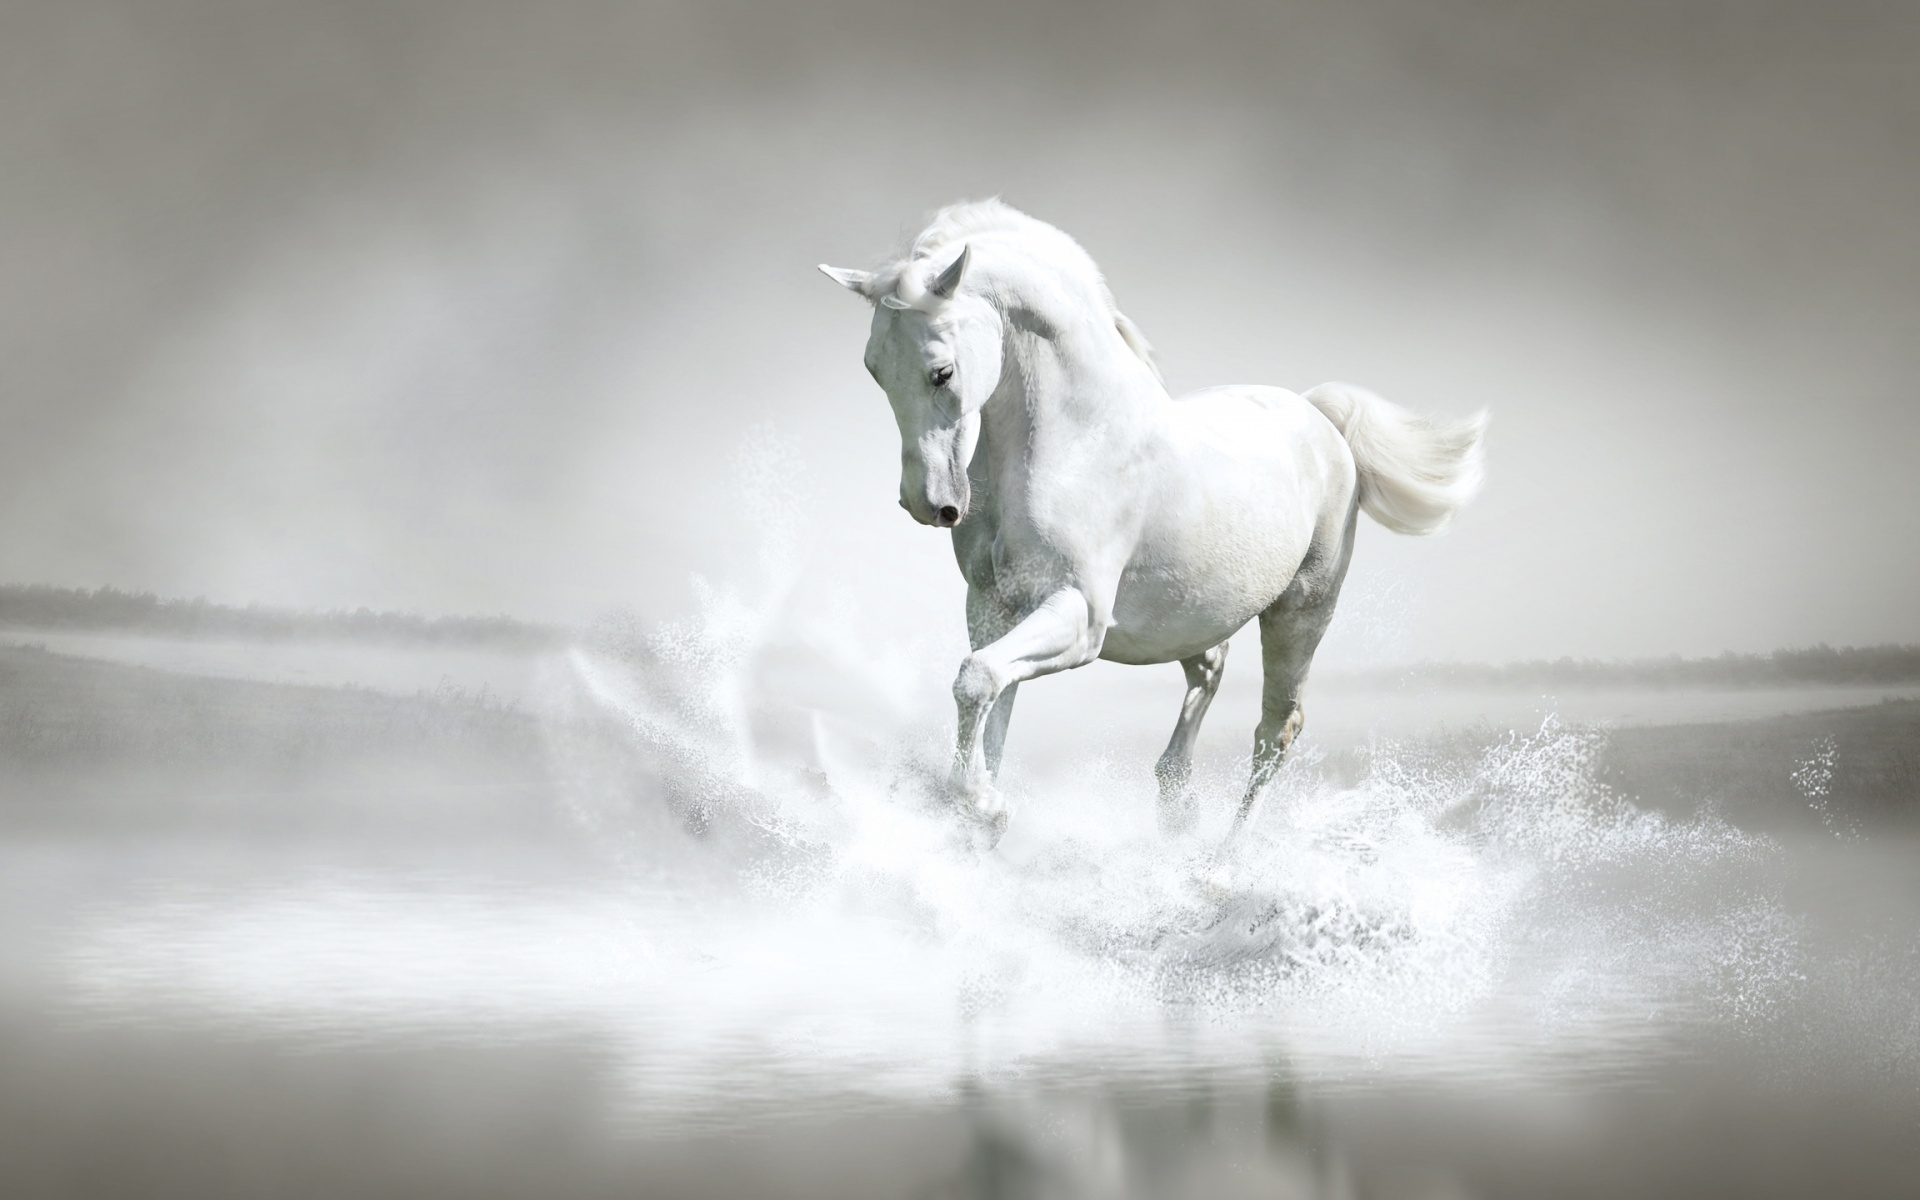 Beautiful Wallpaper Horse Stunning - horse-1  Photograph_846227.jpg